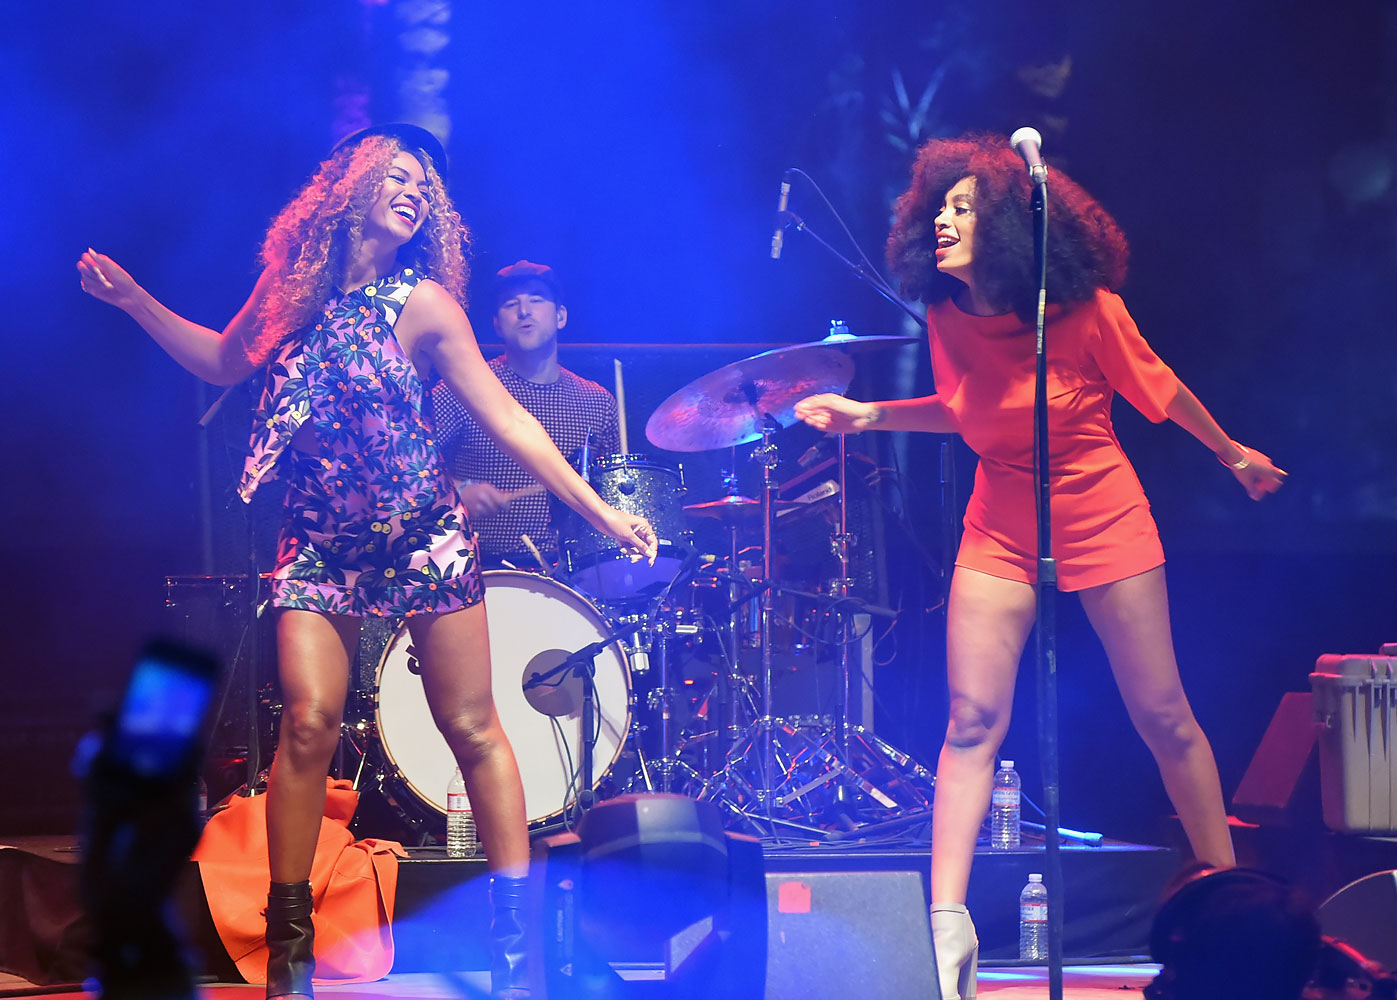 Solange, right, and Beyonce perform onstage during day 2 of the 2014 Coachella Valley Music & Arts Festival at the Empire Polo Club on April 12, 2014 in Indio, California.